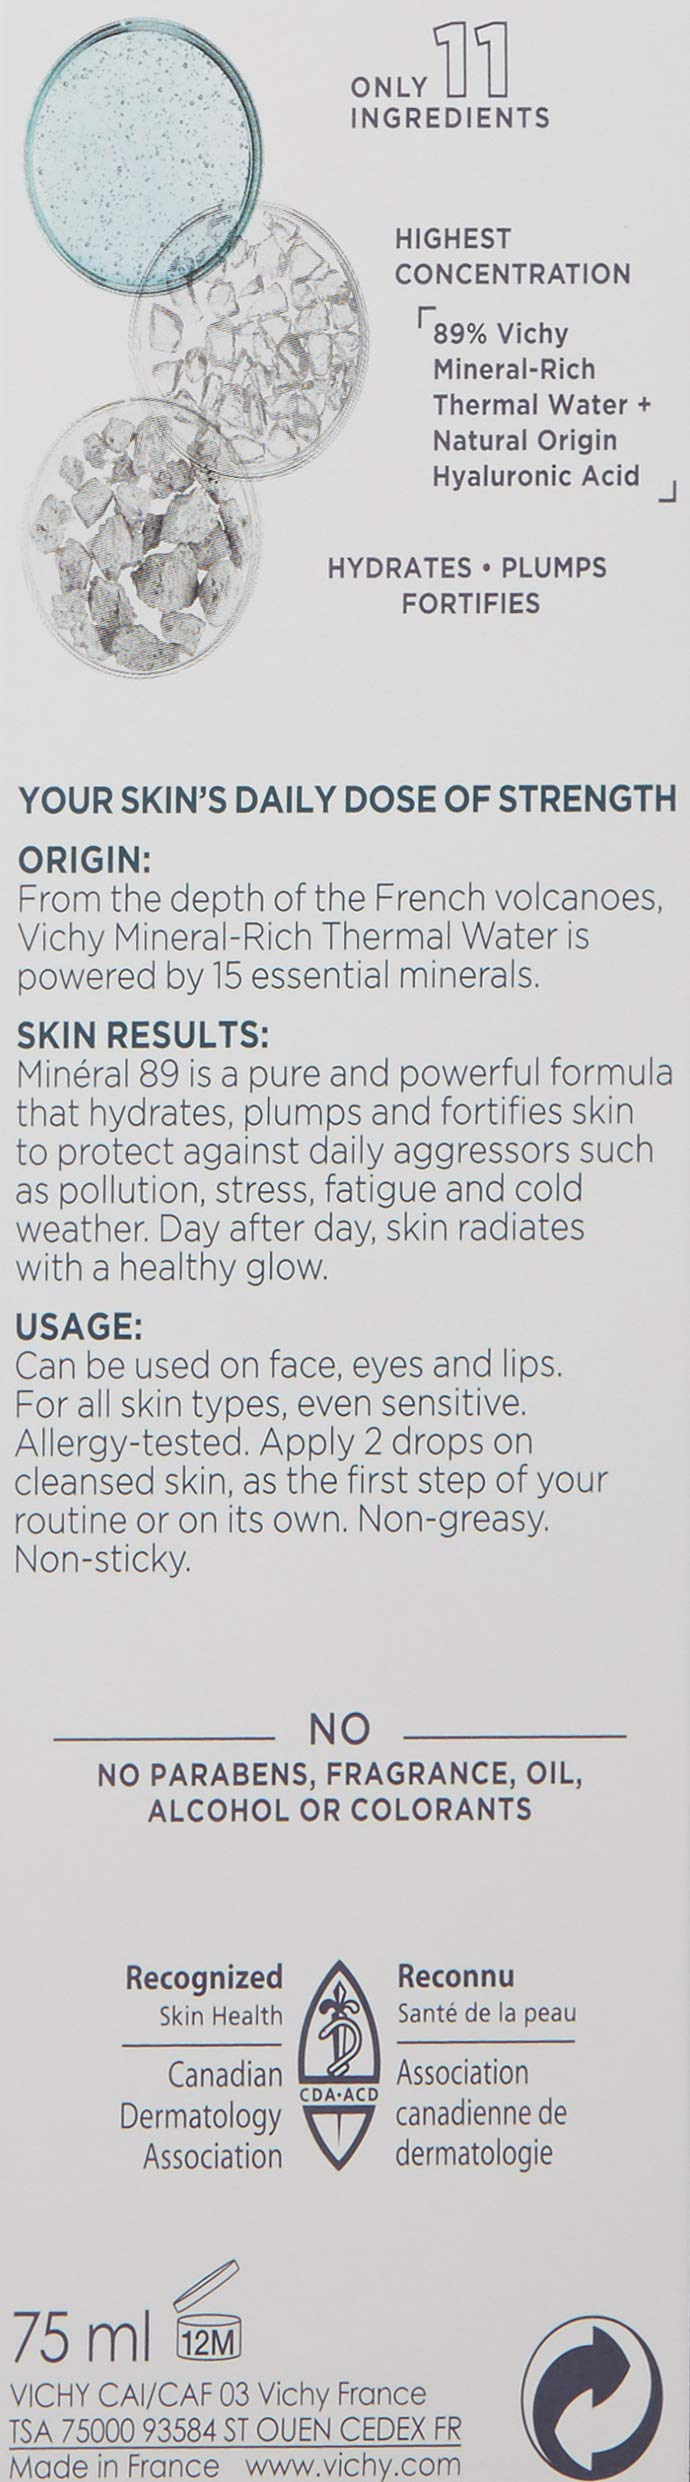 Vichy Mineral 89 Hydrating Hyaluronic Acid Serum and Daily Skin Booster, For Stronger, Healthier Looking Skin, 2.54 Fl. Oz. by Vichy (Image #8)